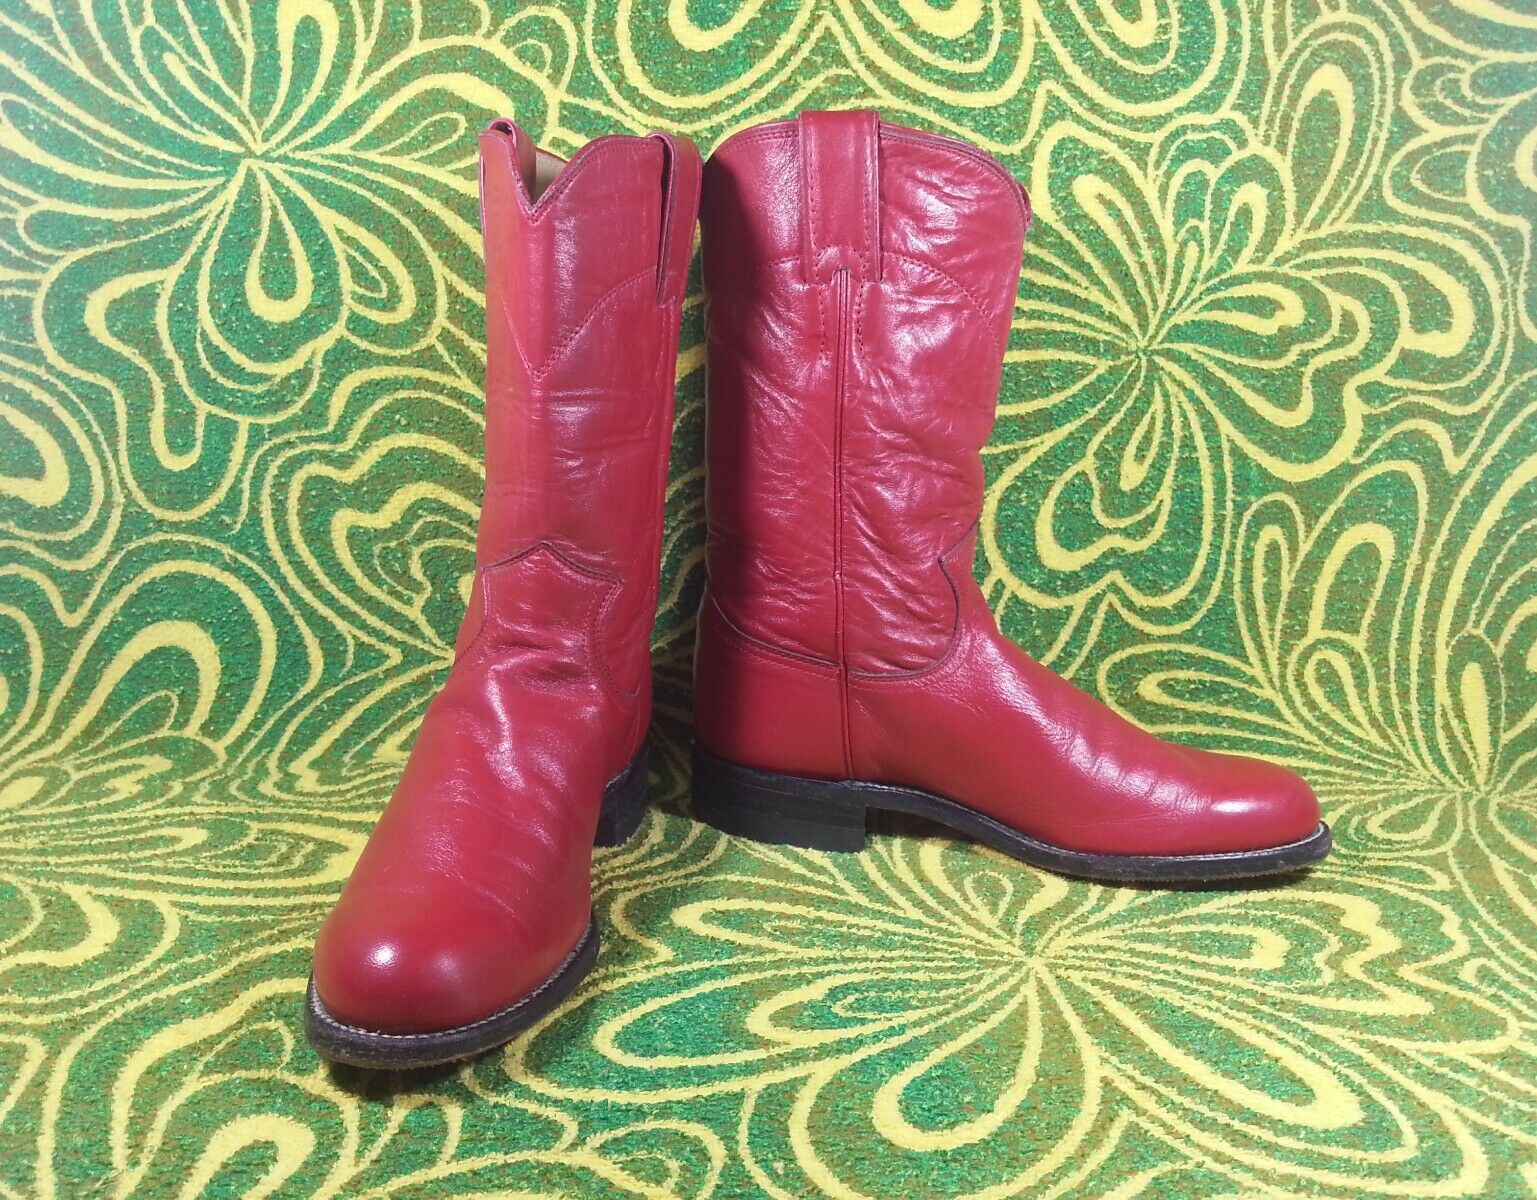 JUSTIN RED LEATHER sz.5.5 MADE IN THE USA BEAUTIFUL BOOTS